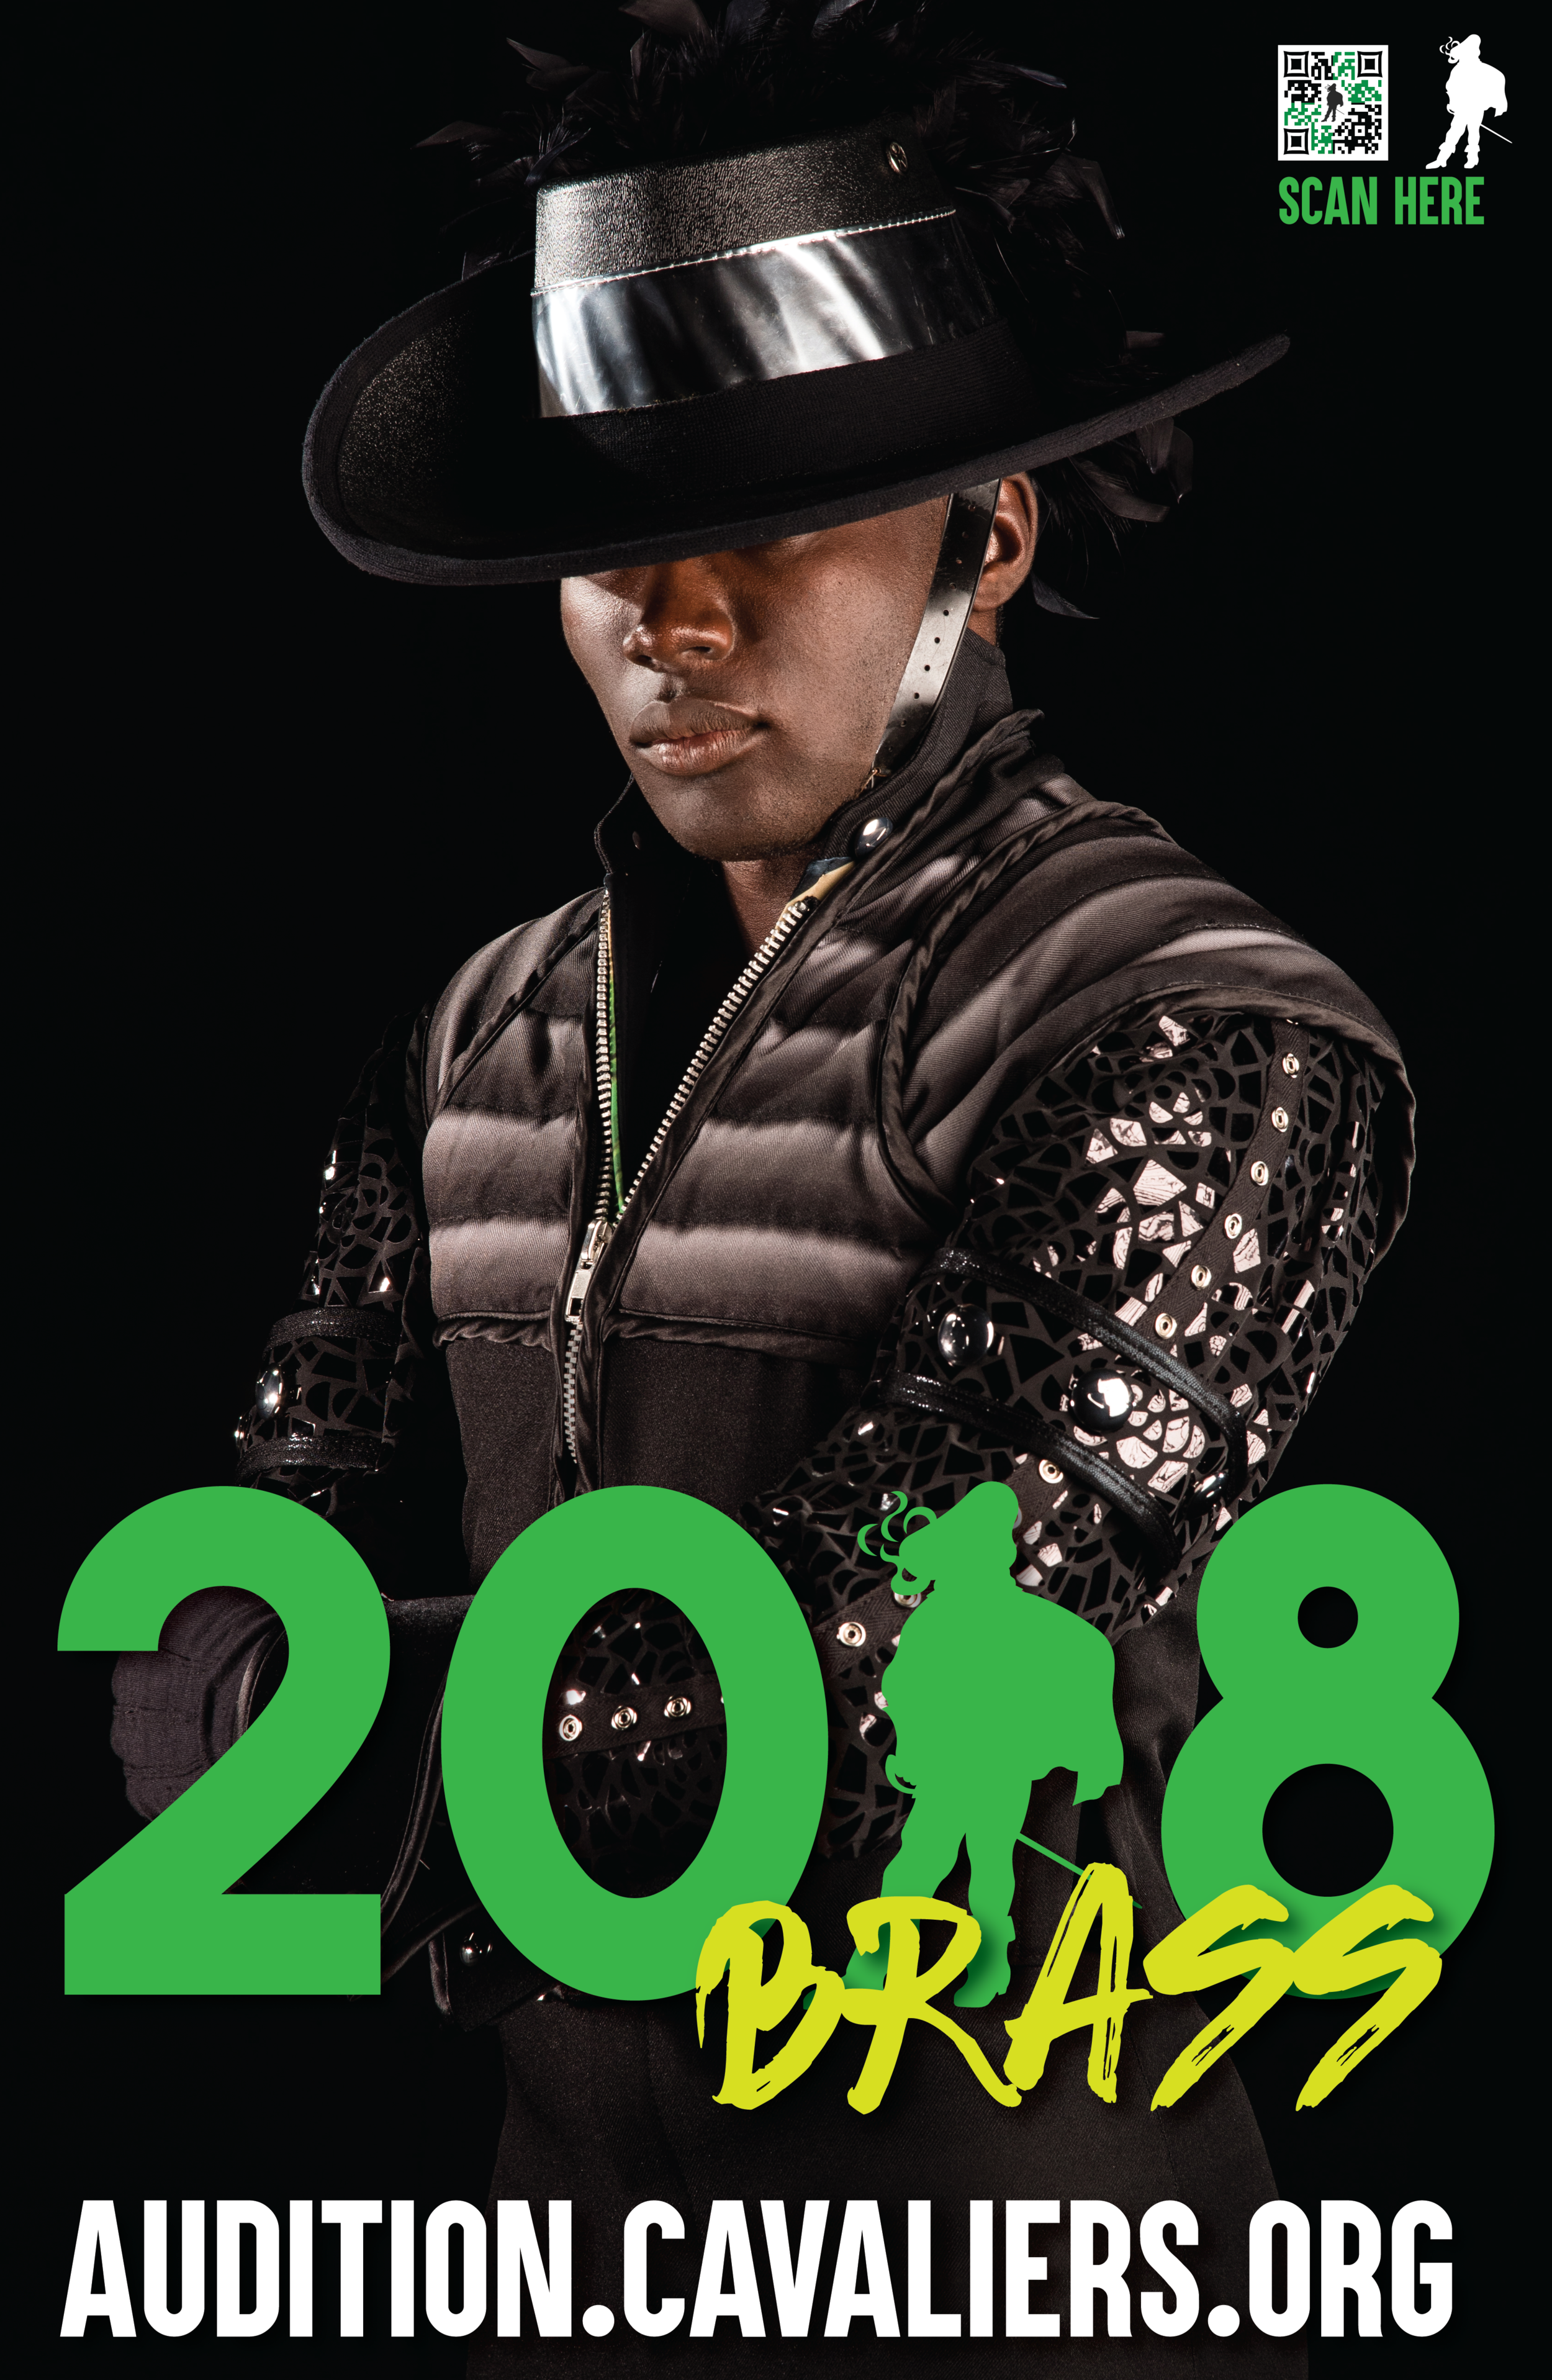 Cavaliers2018_AuditionPoster_Brass_01.png